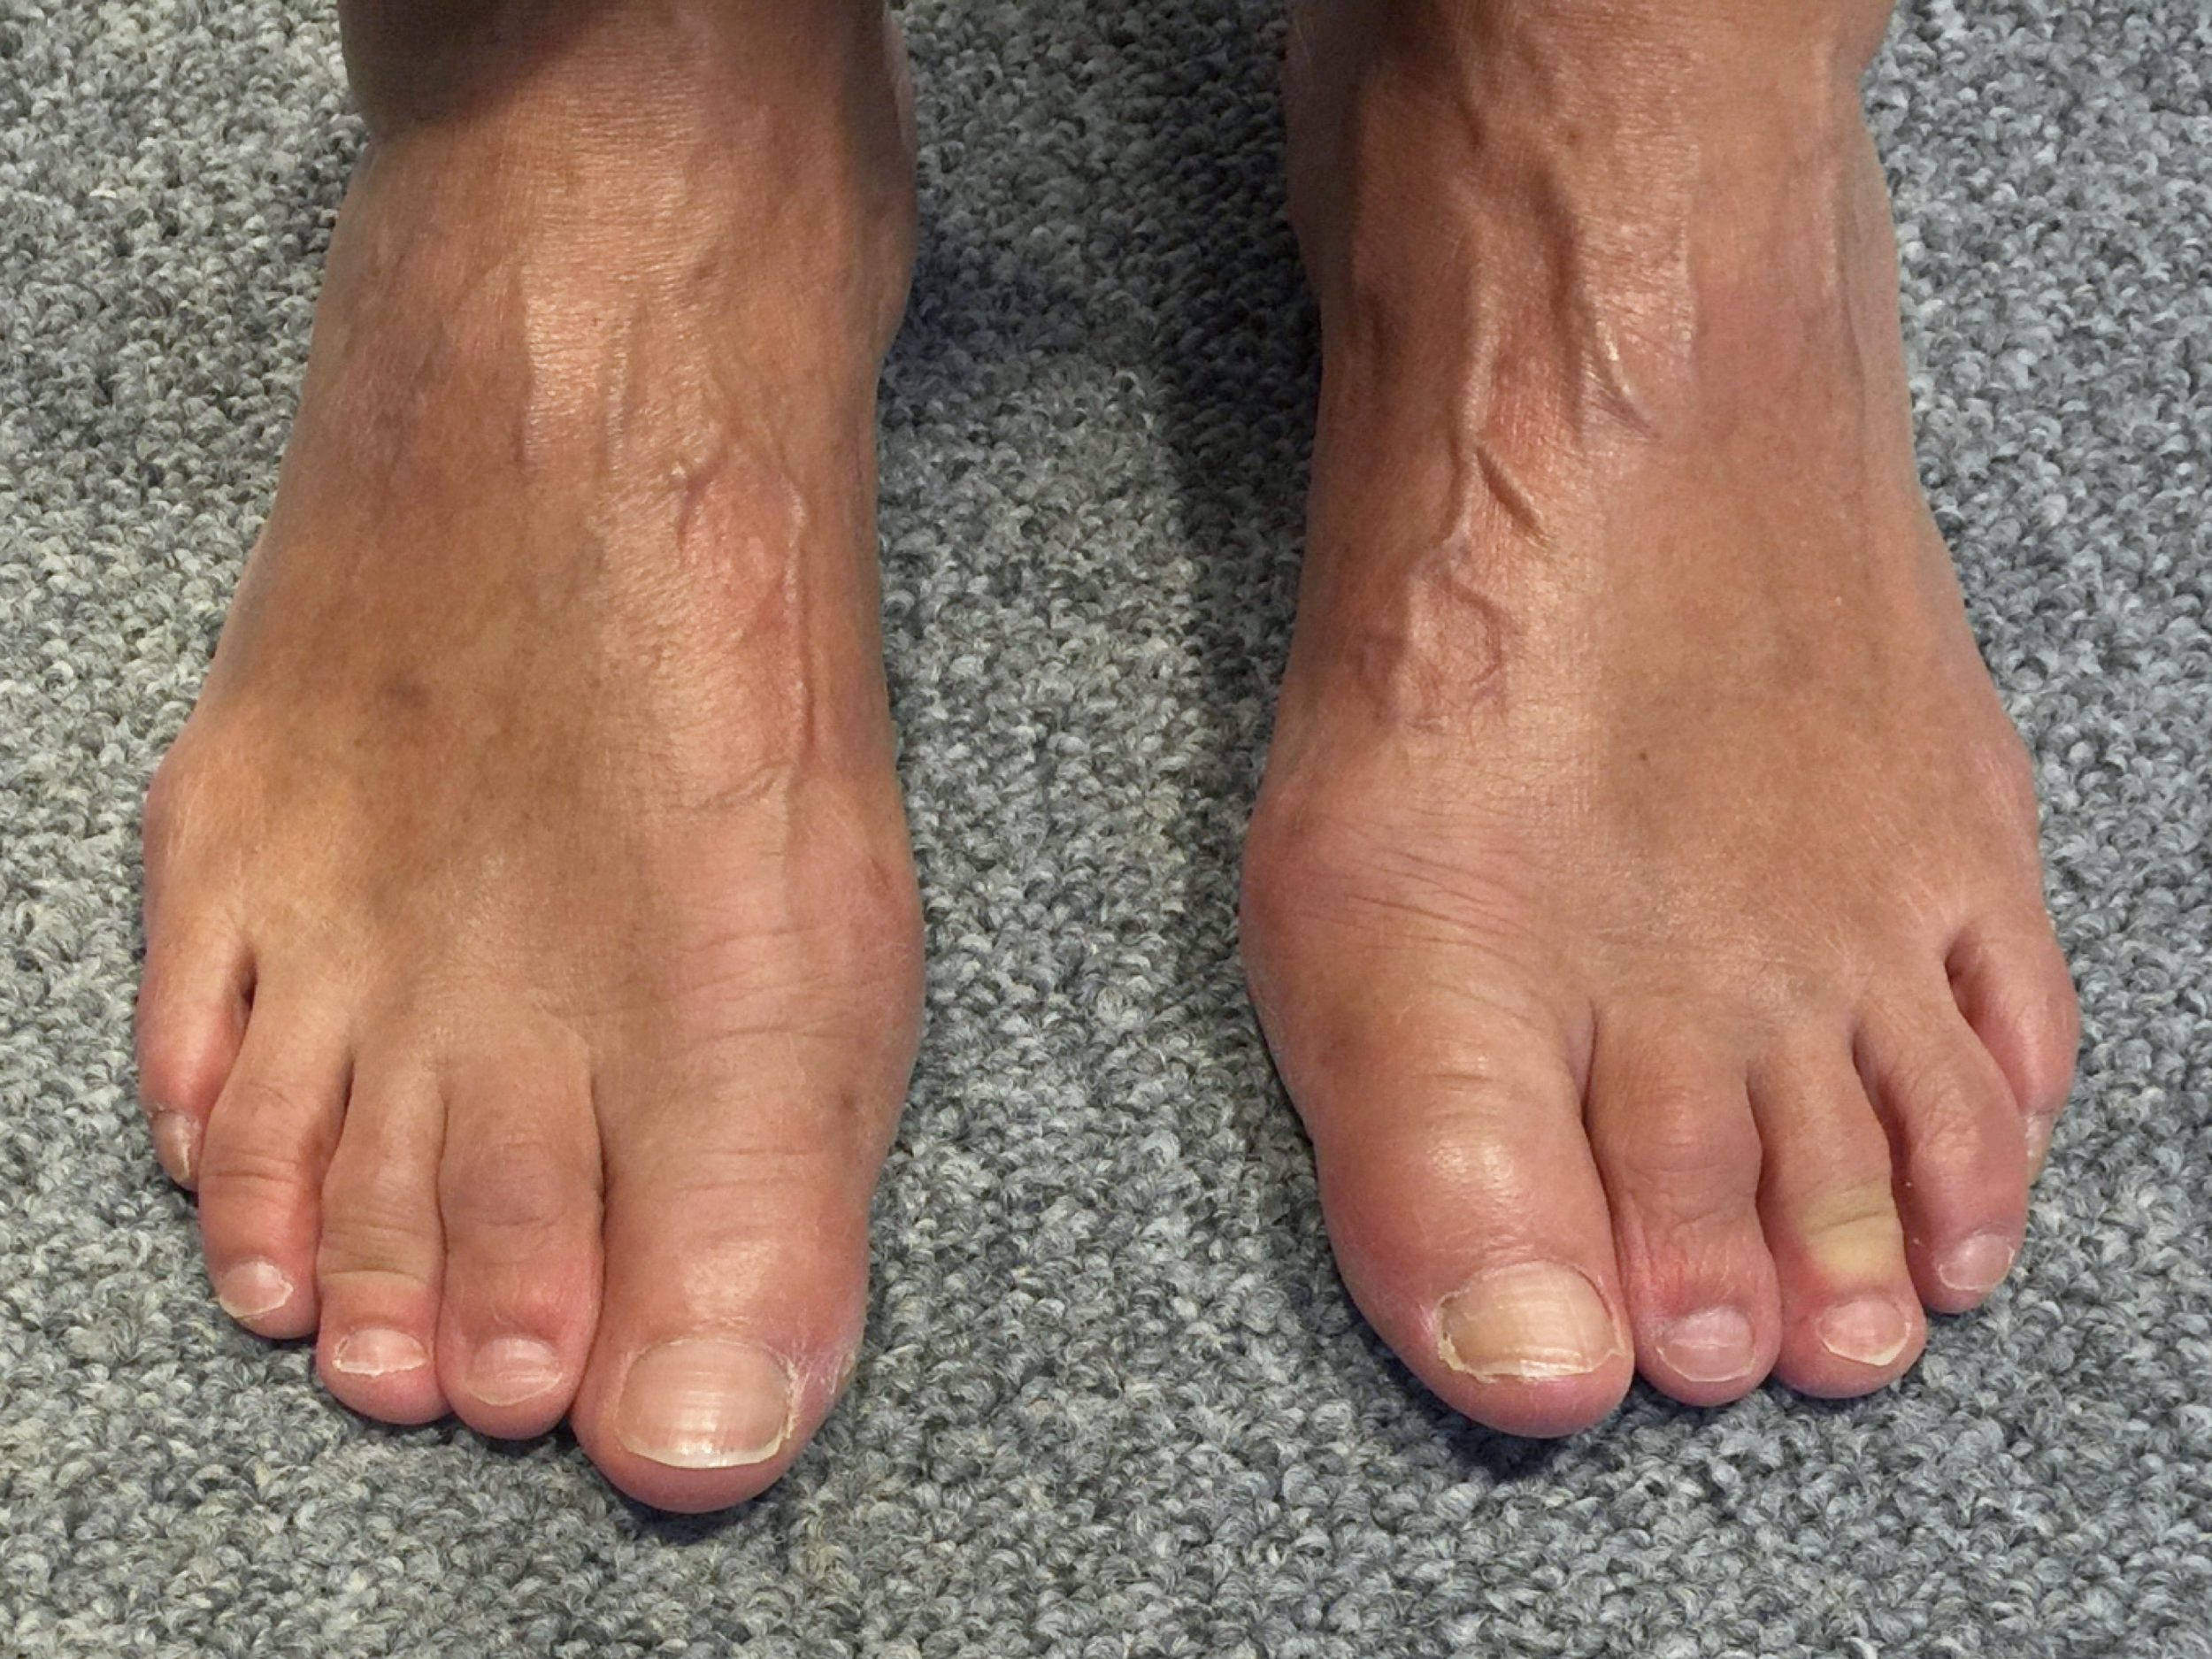 Case 8: 5 months after MICA (ProStep)